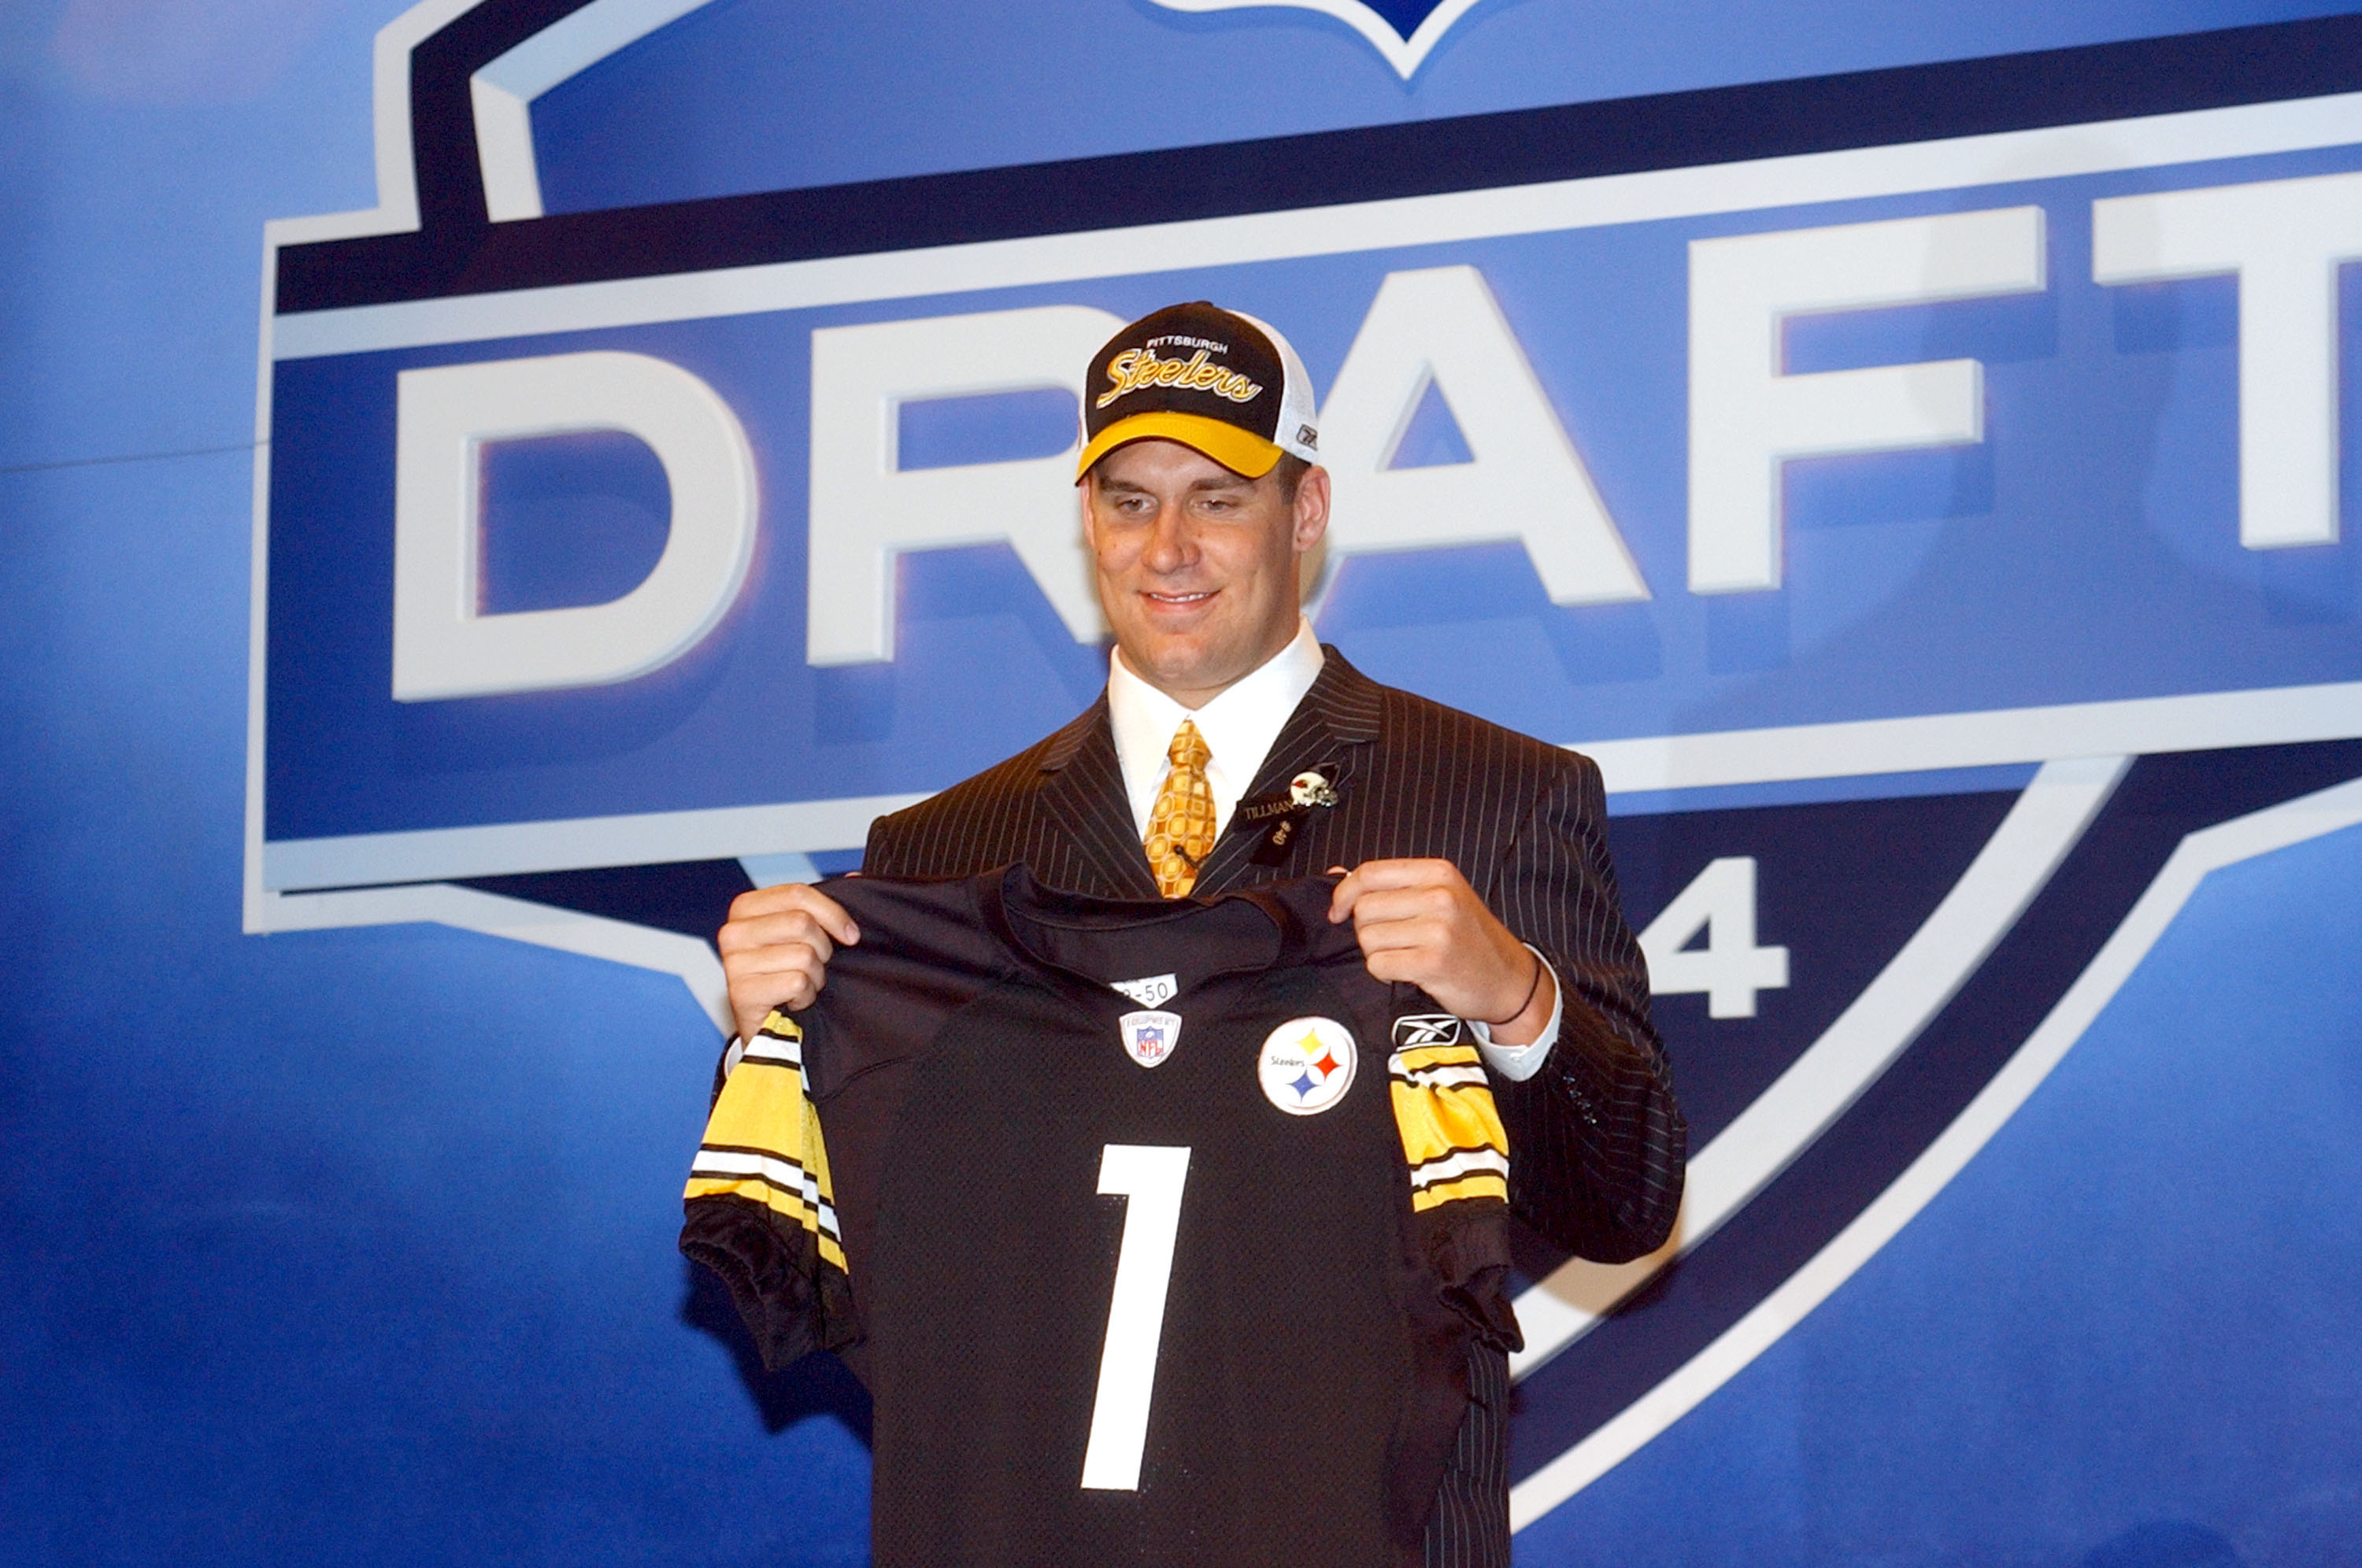 2004 NFL Draft: All of the 1st-Round Picks From Ben Roethlisberger and Eli Manning's Incredible Class